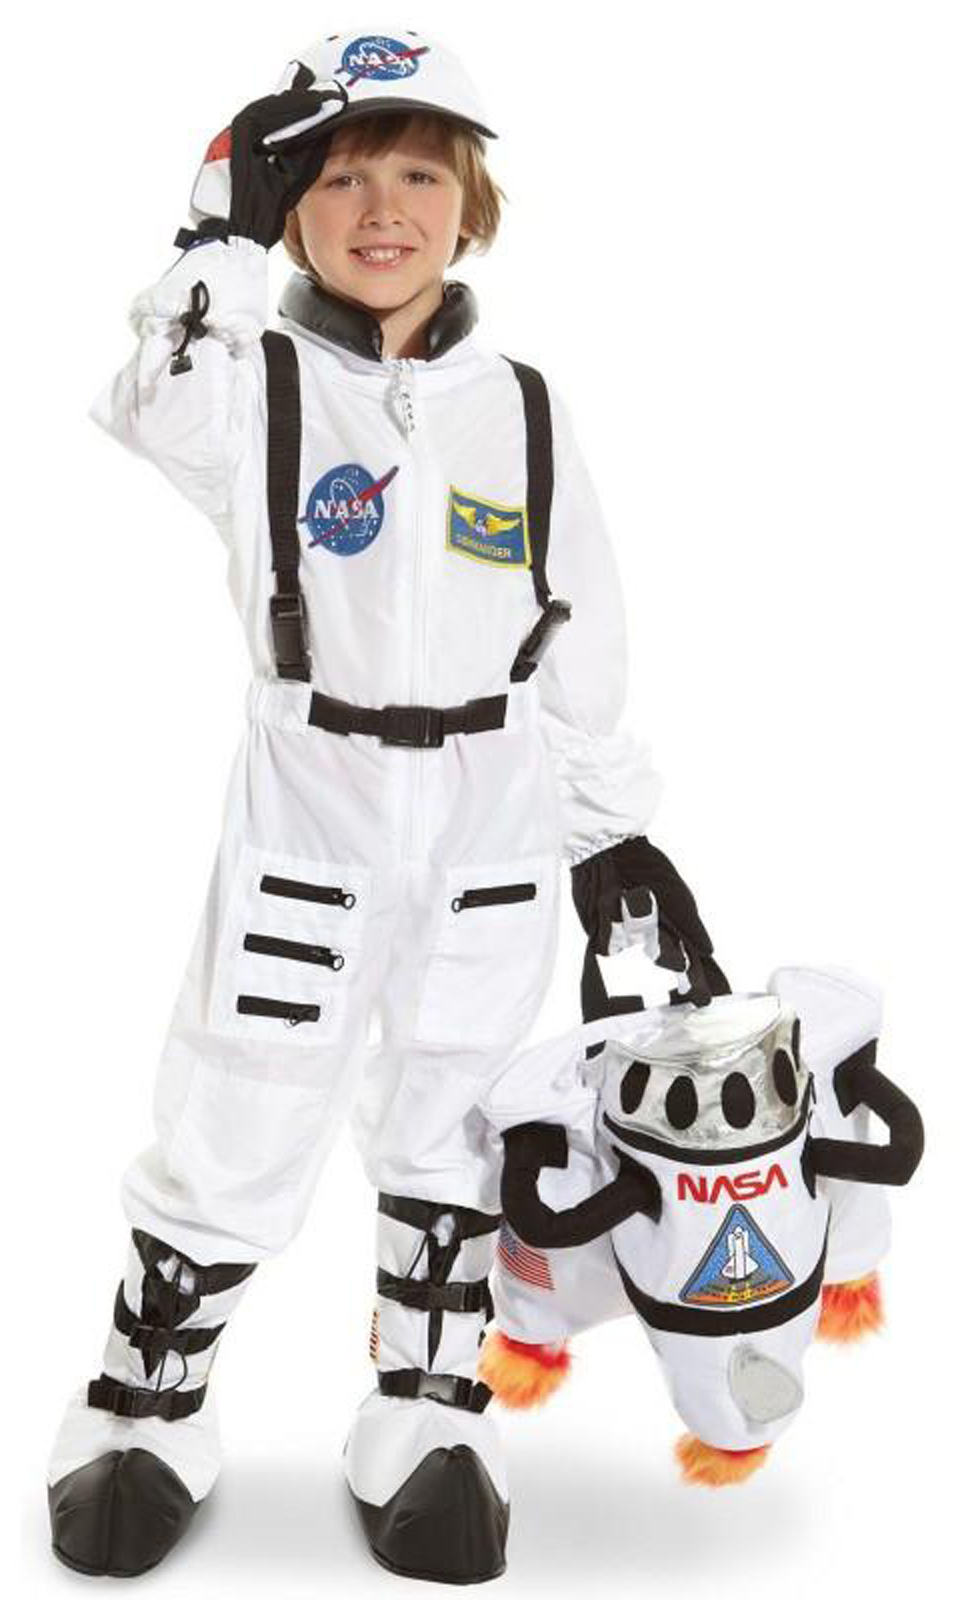 astronaut outfits in 3d - photo #38